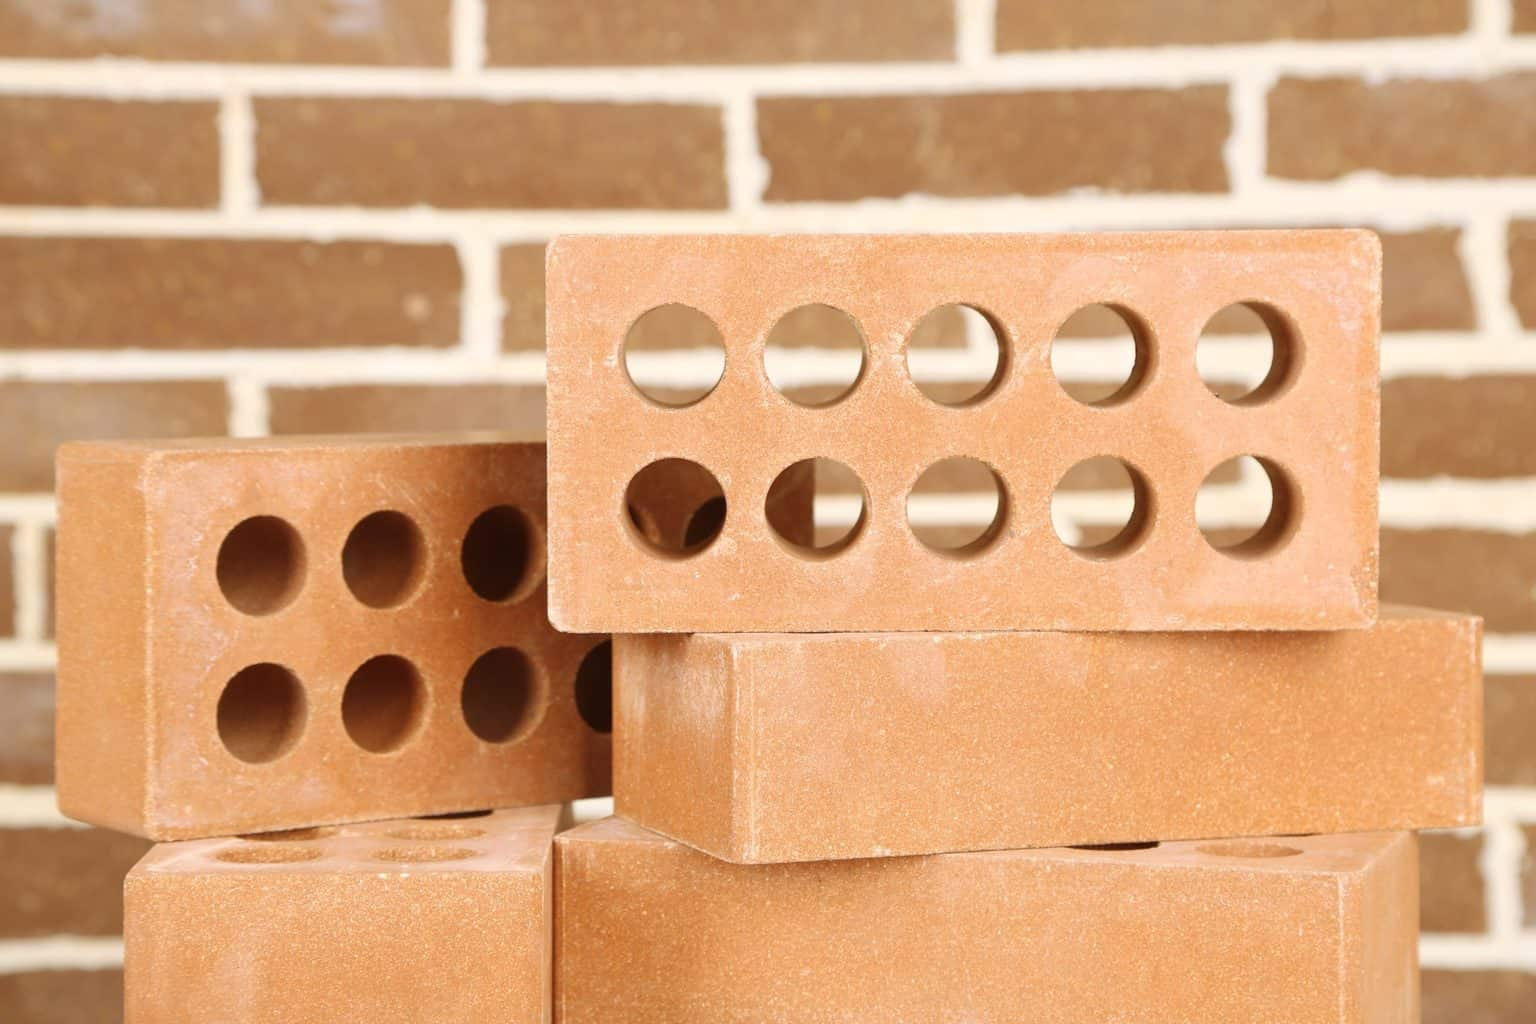 Why Bricks Have Holes A Simple But Brilliant Idea